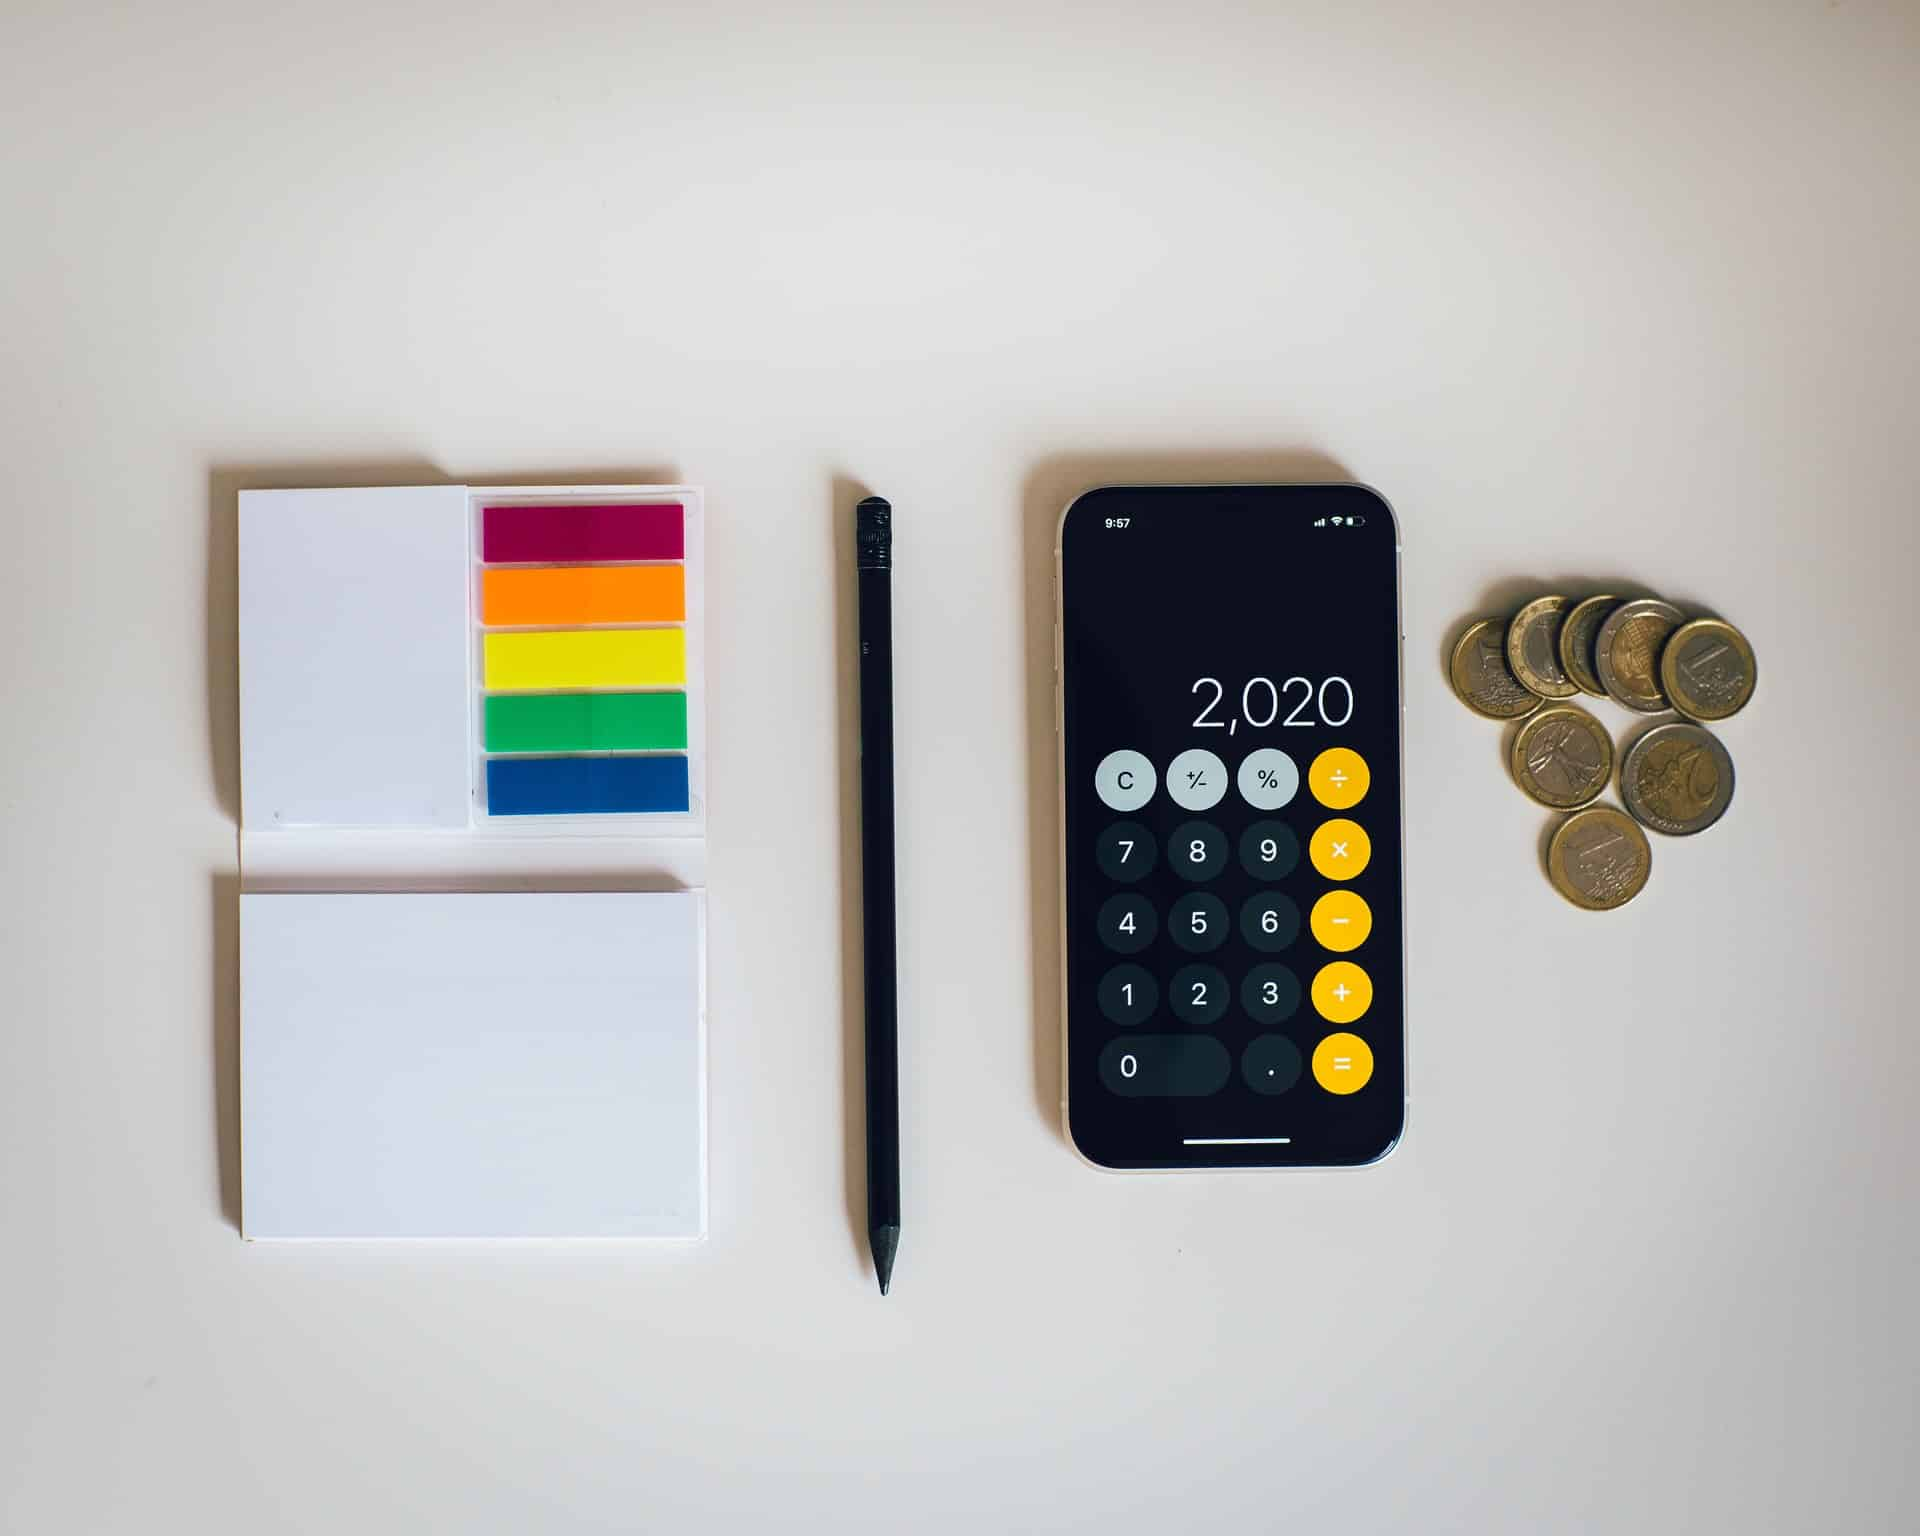 How to Calculate Engagement Rate in Social Media: The Definitive Guide